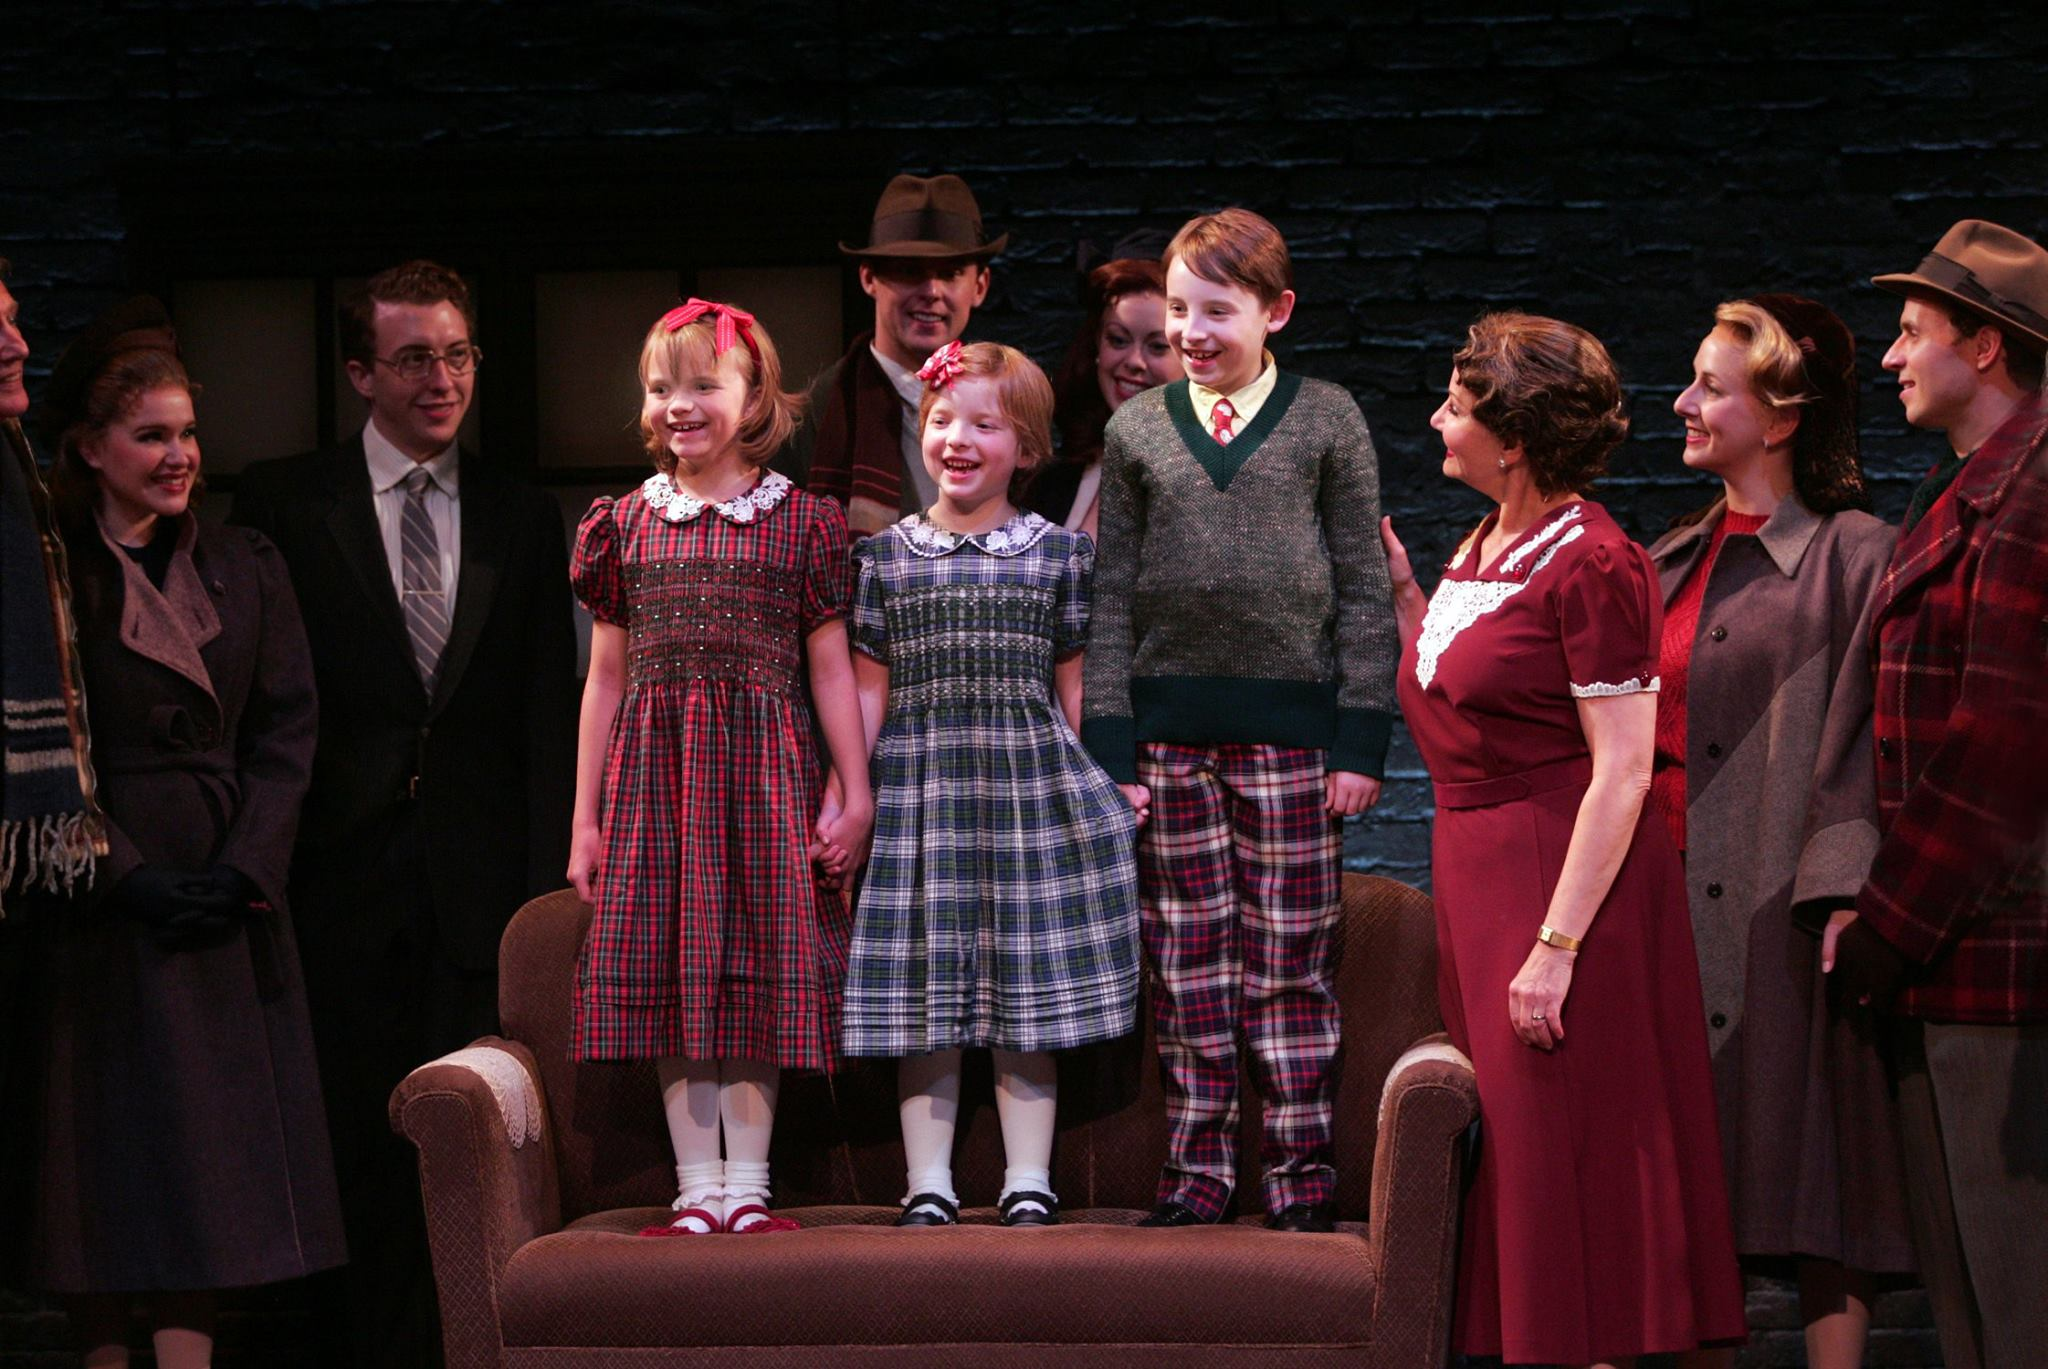 """Christmas Gifts"" The cast of 'A Wonderful Life' Photo by Diane Sobolewski"